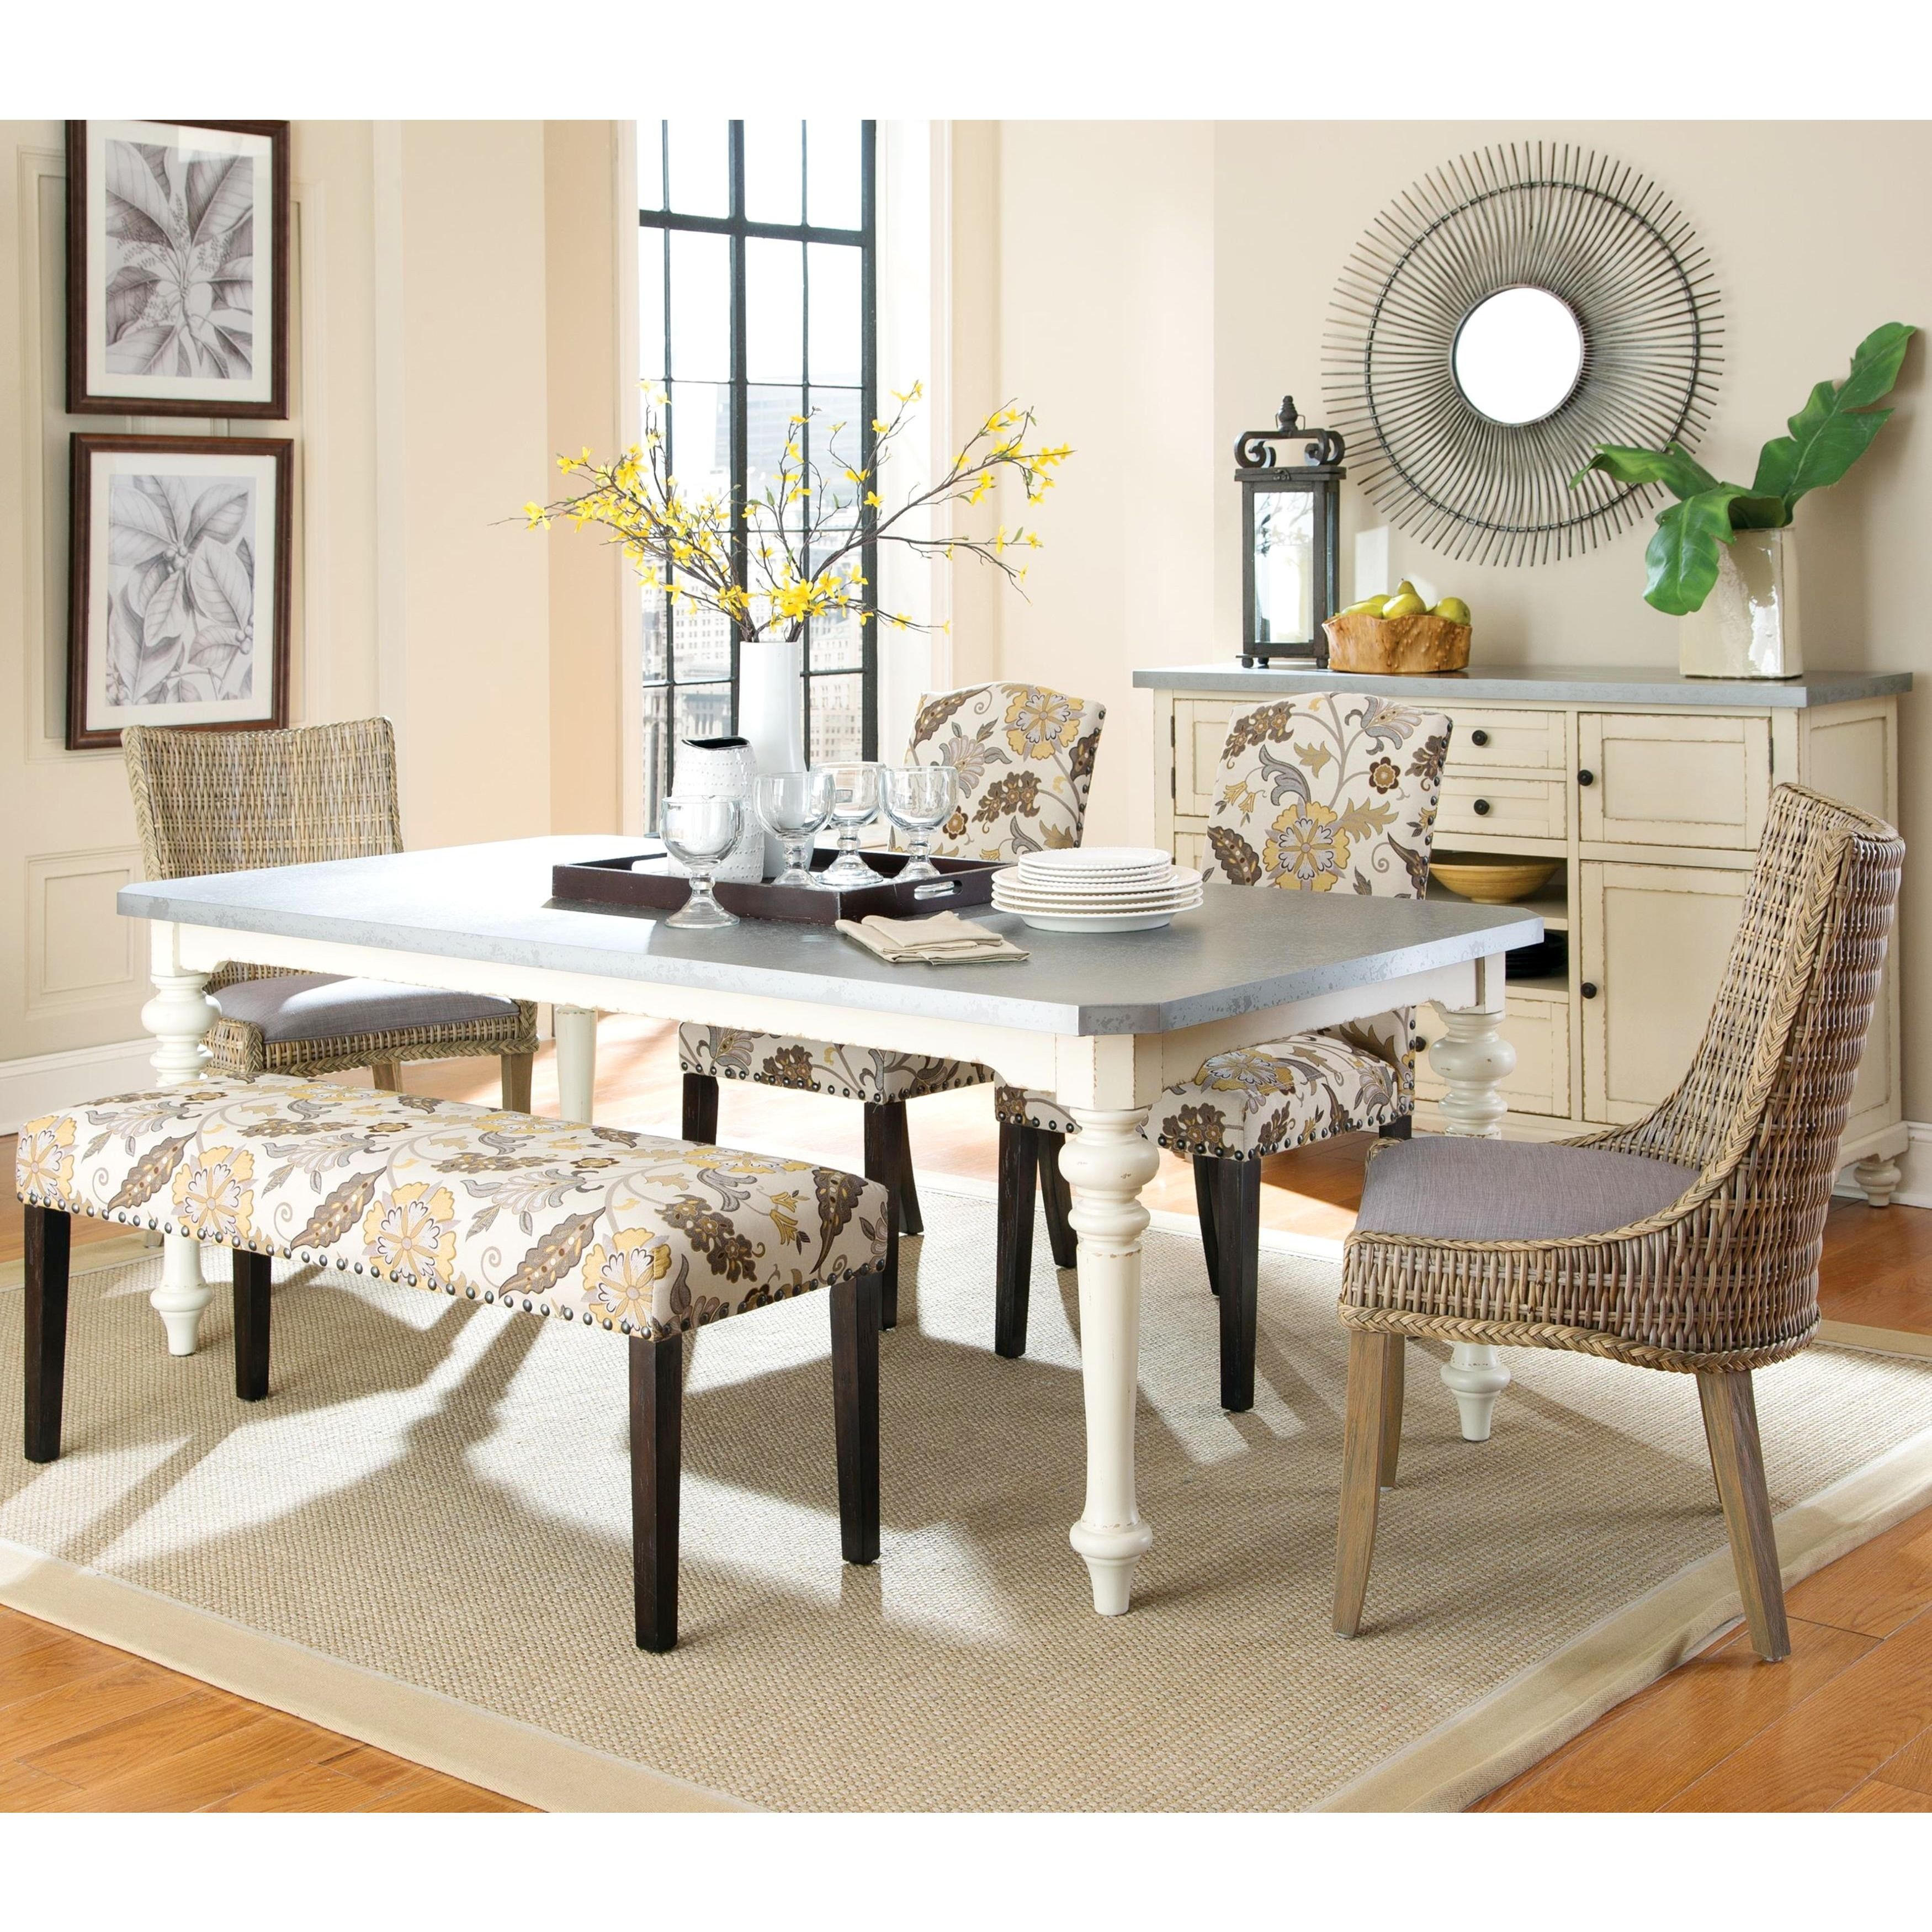 Exceptionnel Brighten Up Your Dining Room With This Elaborate Tropical Design Dining  Set. Choose From Floral